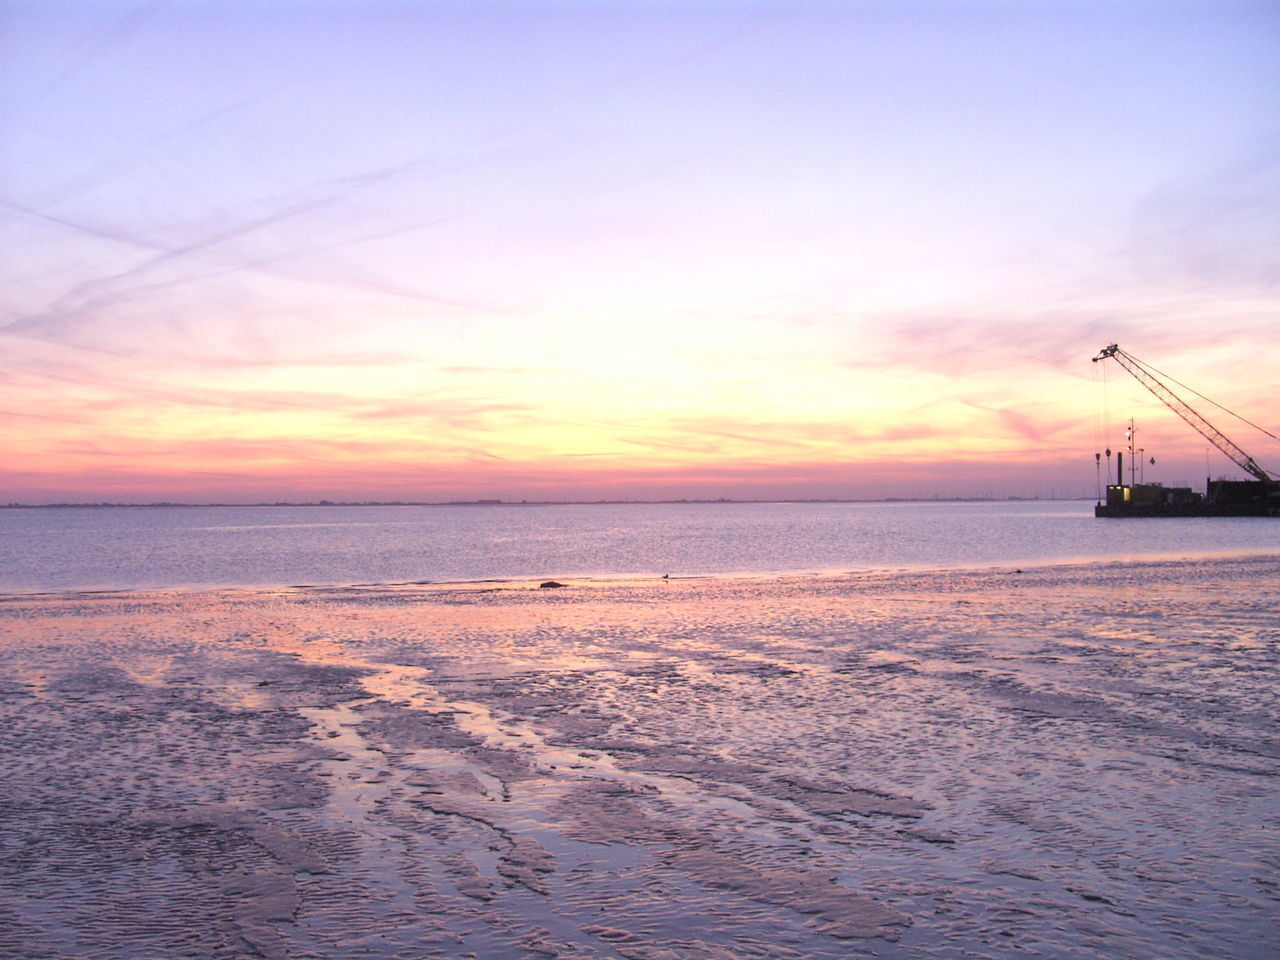 Sunset Sea Sky Silhouette Water Cloud - Sky Scenics Tranquility Dusk Landscape Nature Reflection Beauty In Nature Horizon Over Water No People Outdoors Business Finance And Industry Beach Pastel Colored Multi Colored Rysumer Nacken Eastfrisia